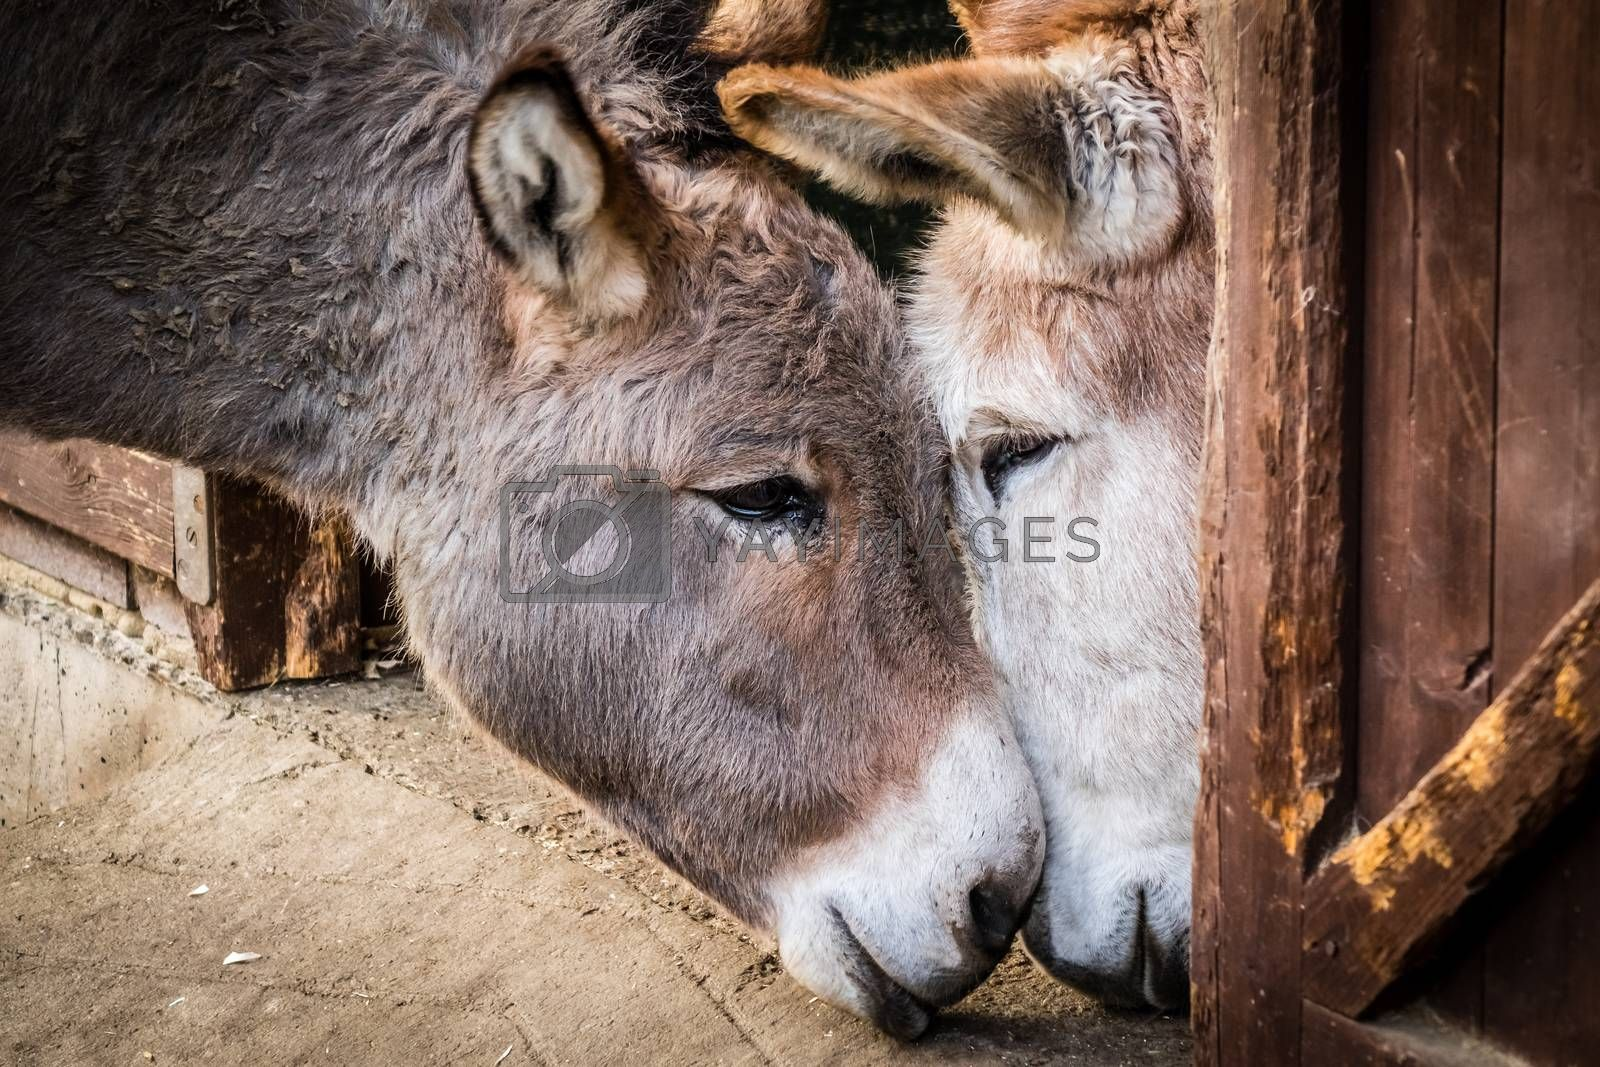 Two donkeys cuddling to each other in a barn on a farm